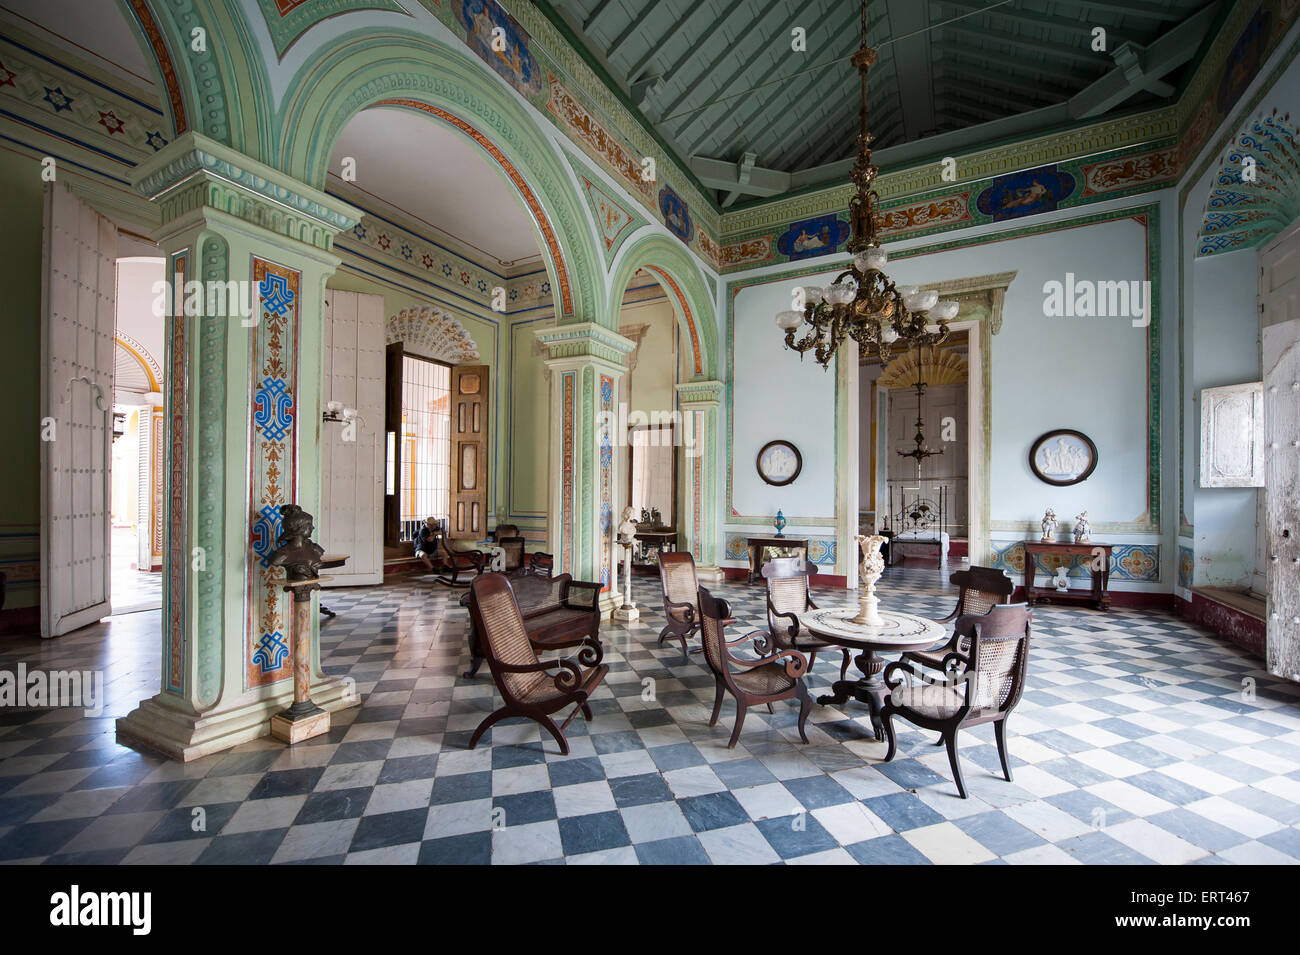 TRINIDAD, CUBA - MAY 31, 2011: Preserved colonial interior of the Museum of History (Museo Historico) with antique - Stock Image